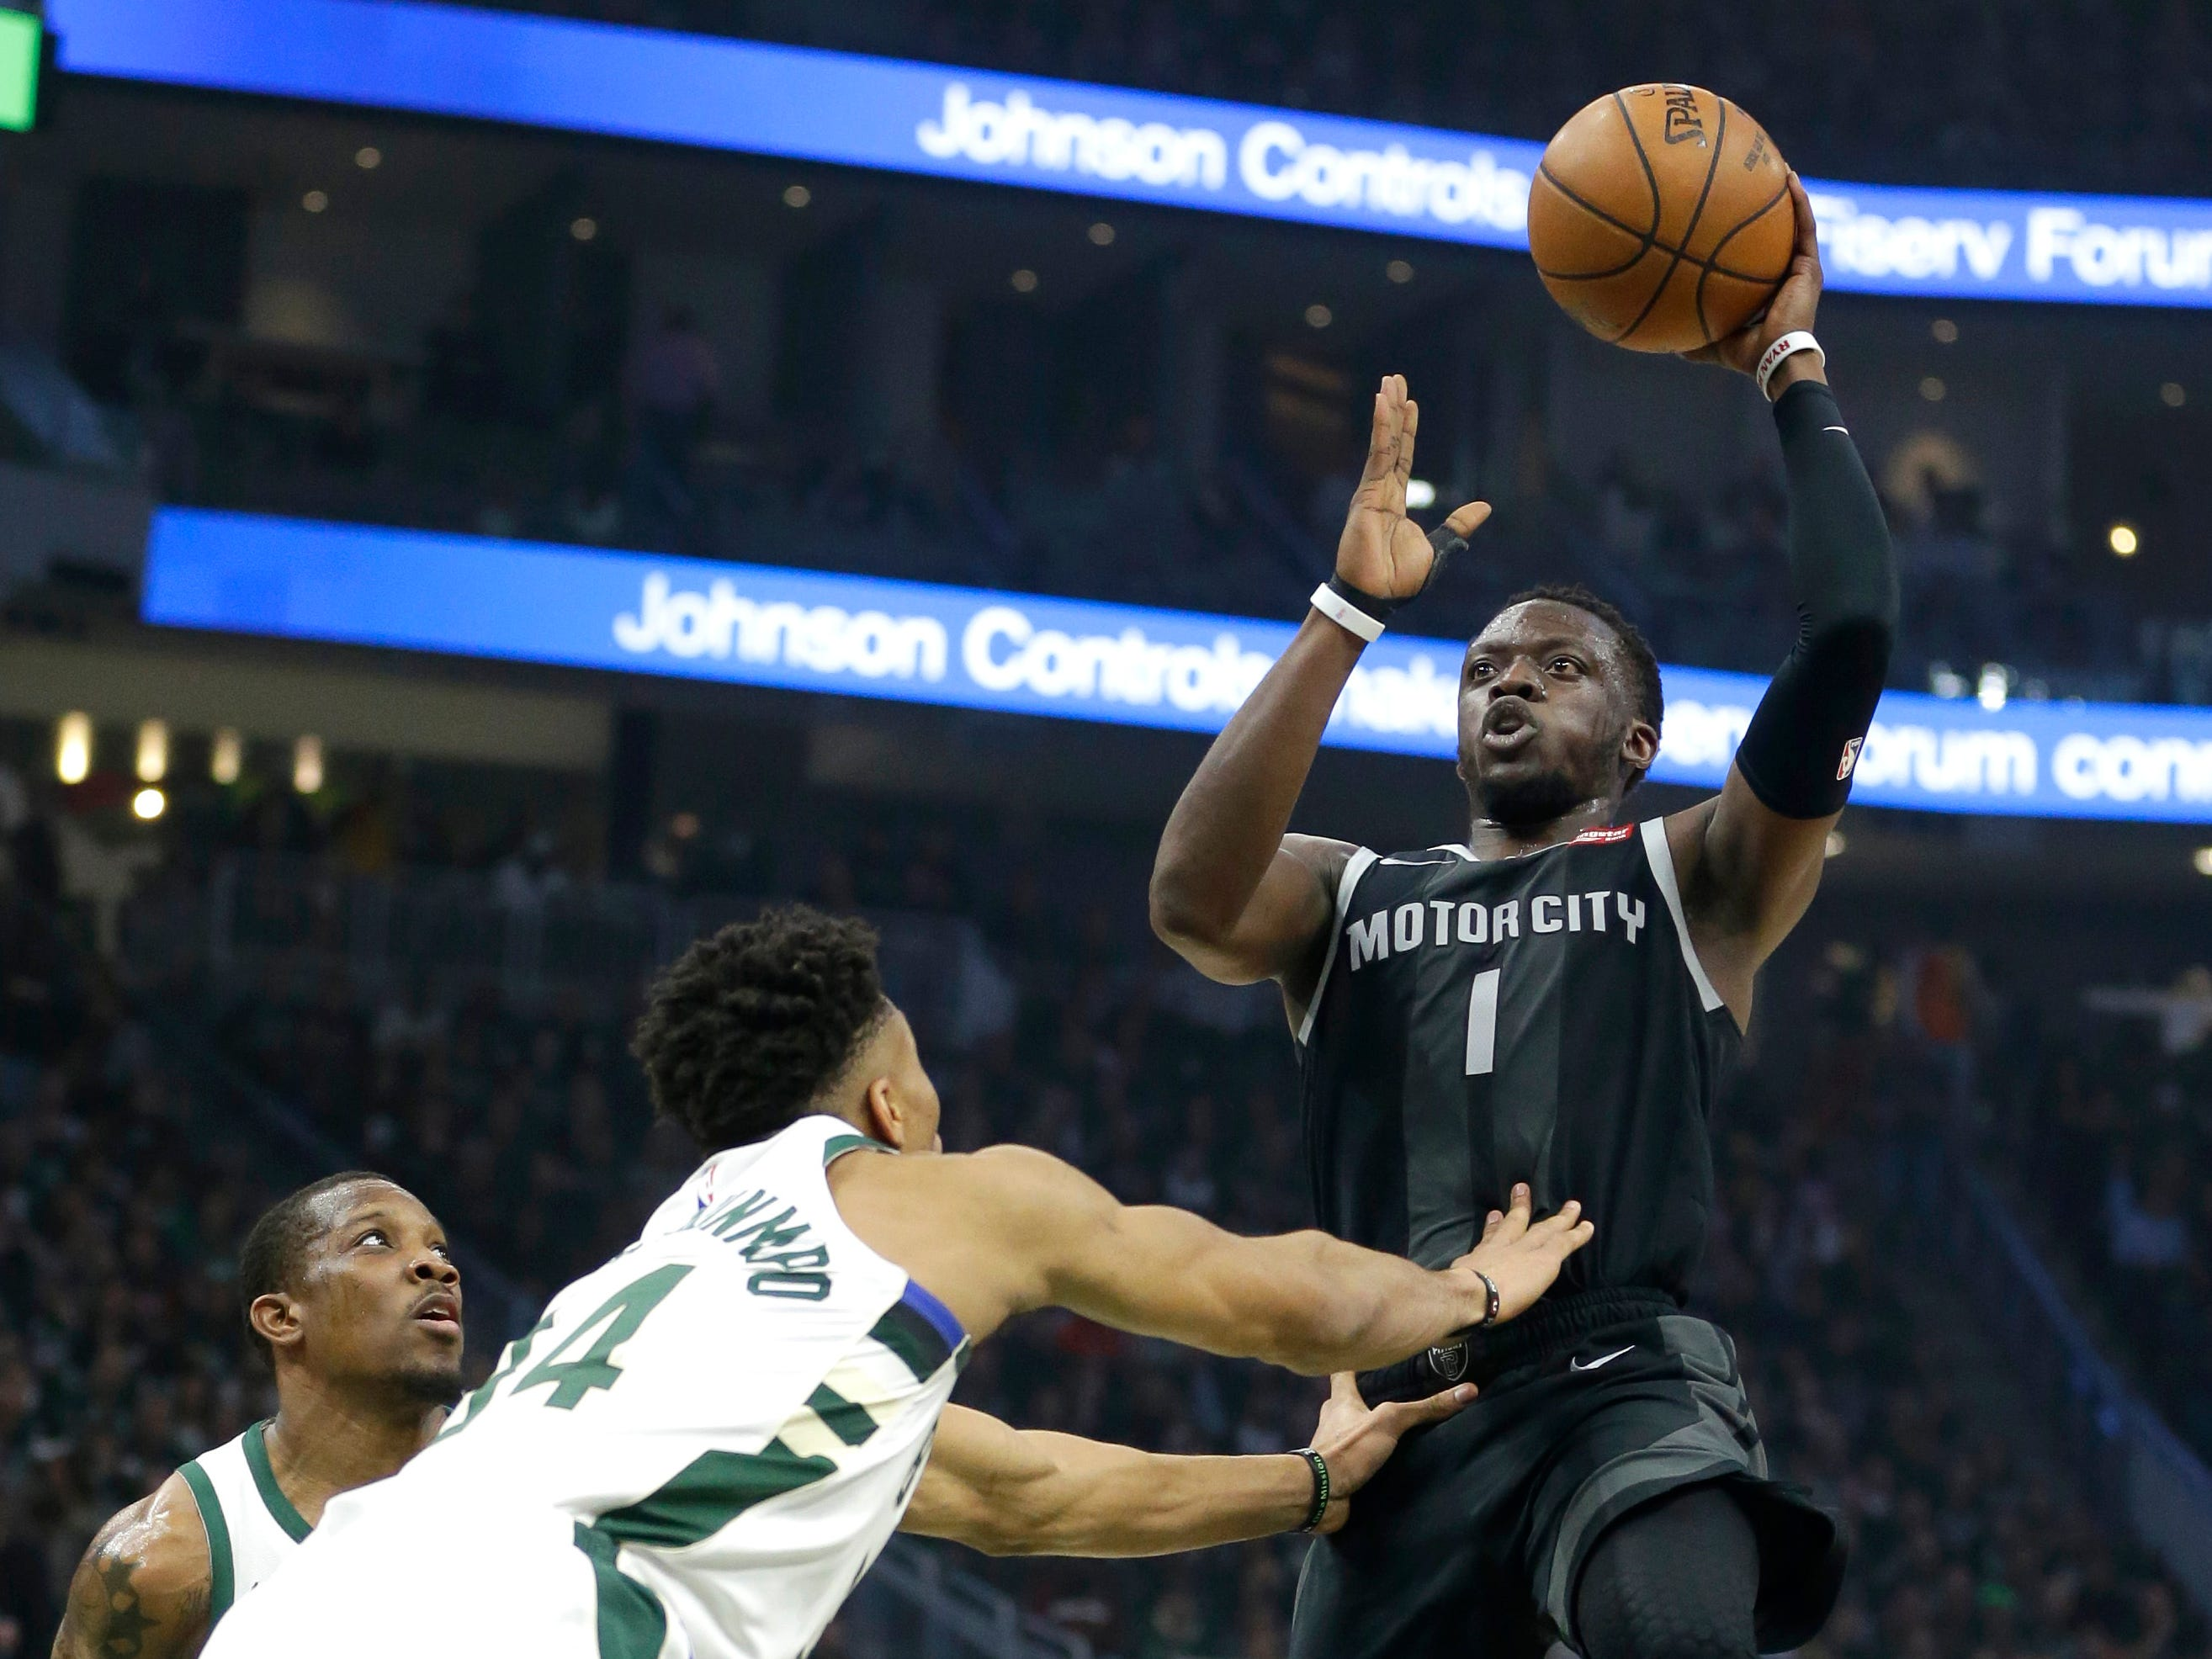 Detroit Pistons' Reggie Jackson (1) shoots against Milwaukee Bucks' Giannis Antetokounmpo during the first half of Game 2 of the NBA first round playoffs in Milwaukee on April 17, 2019. .